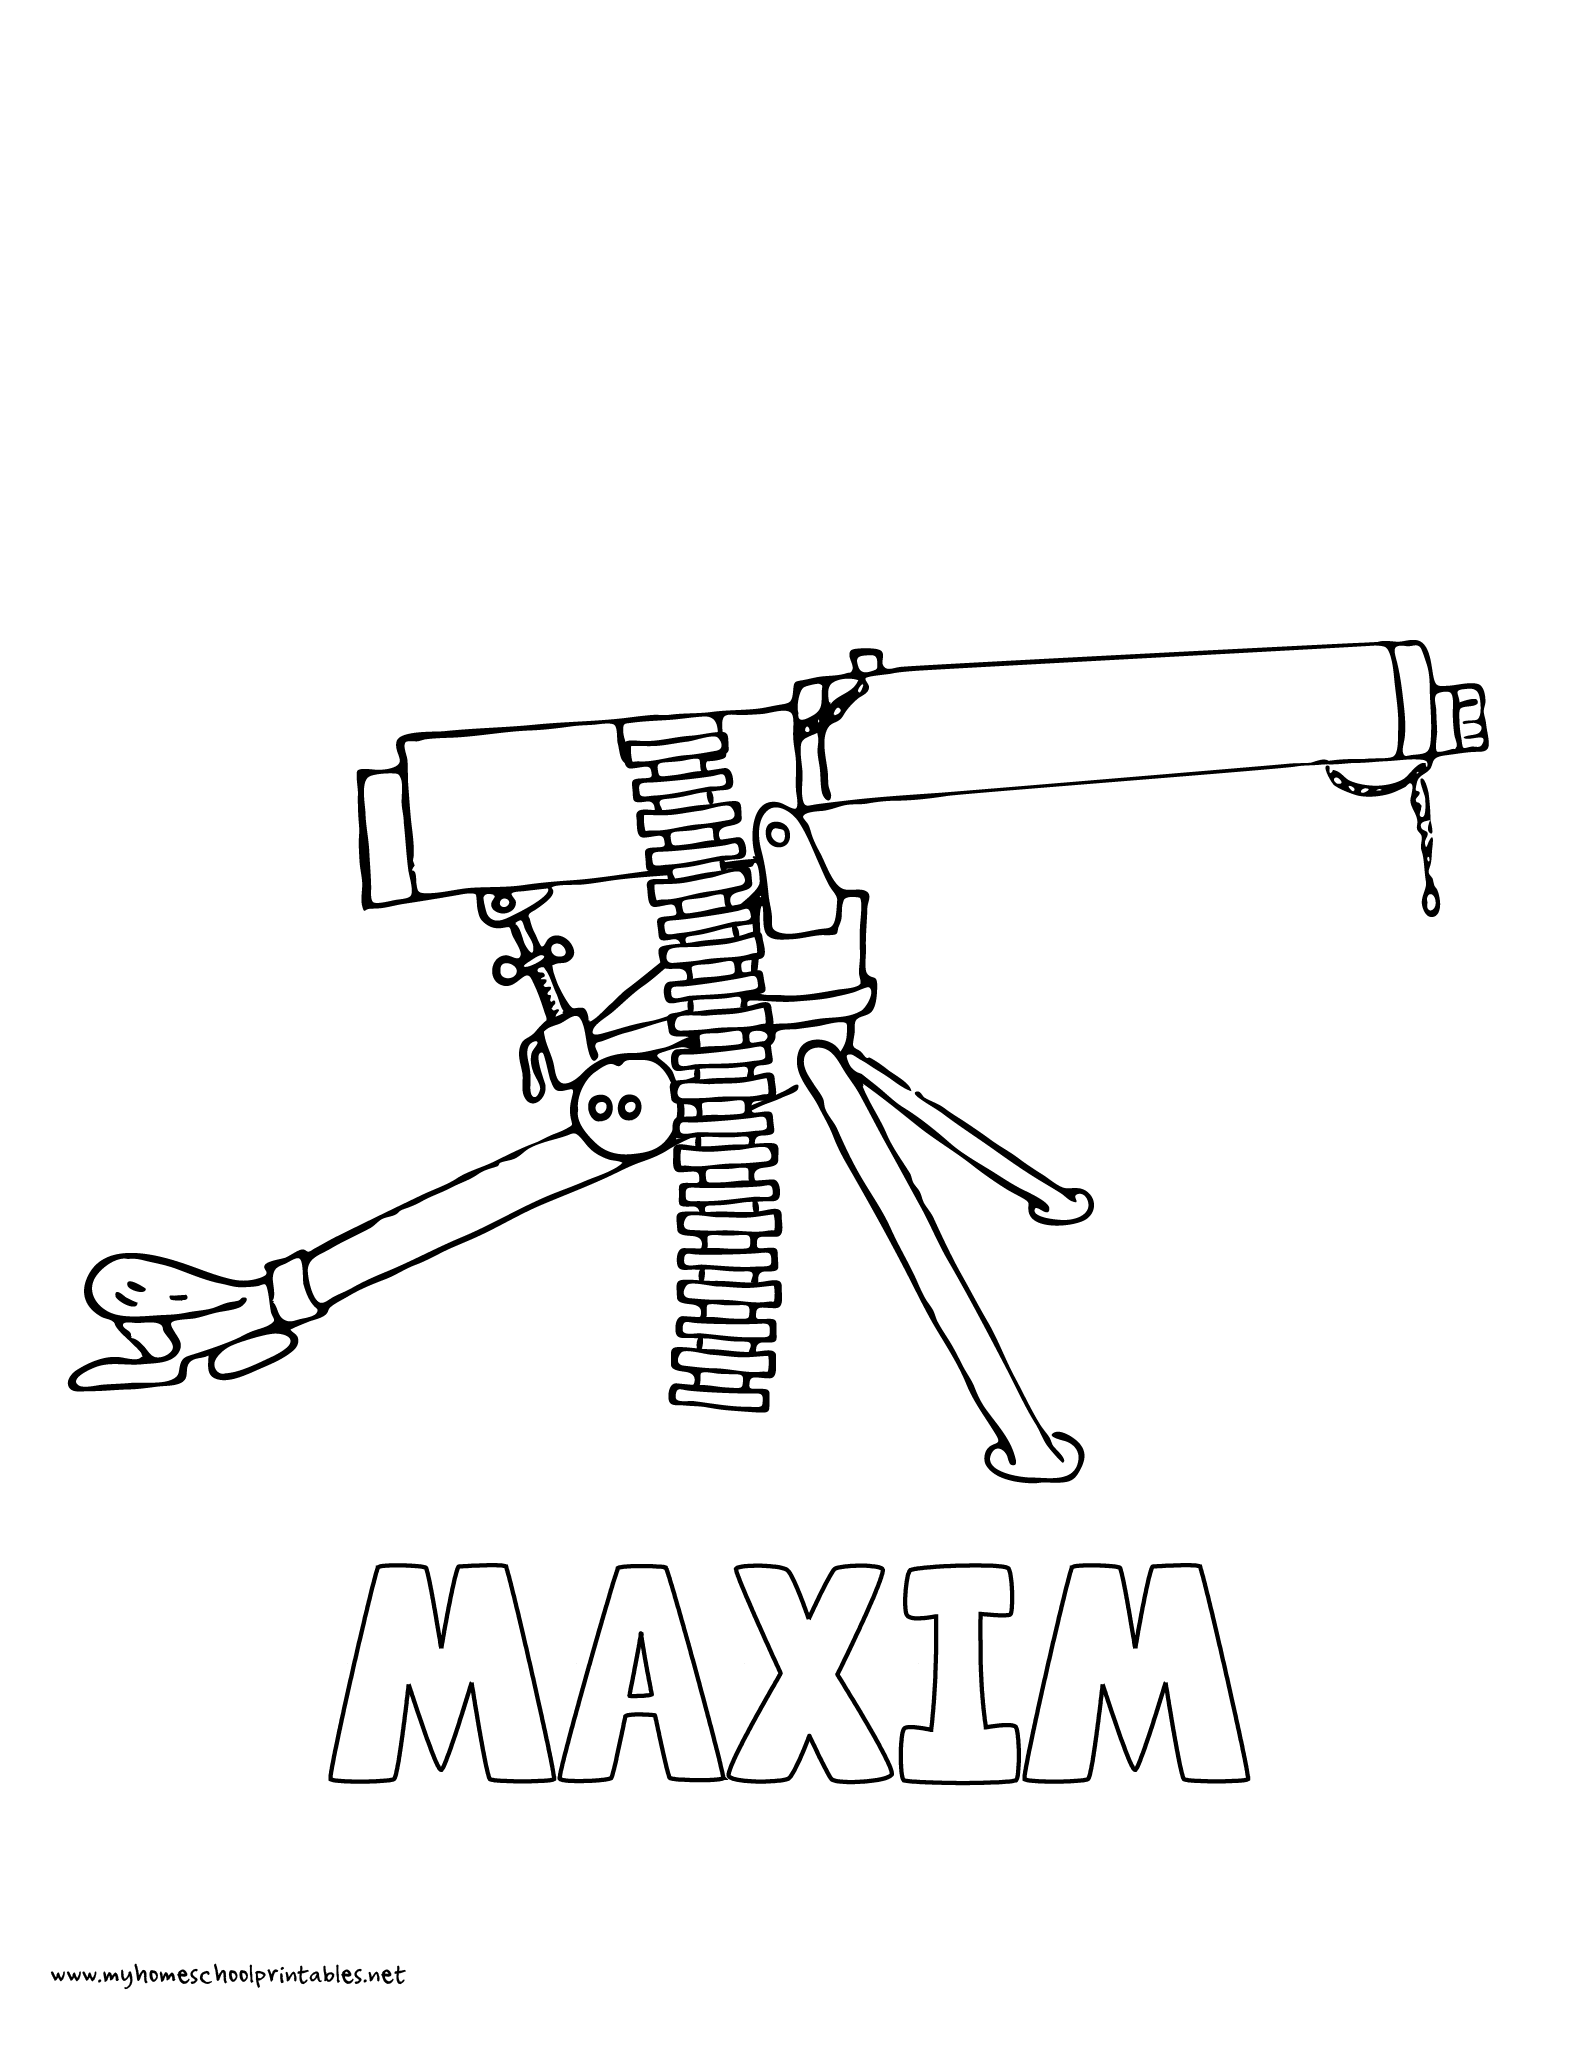 World History Coloring Pages Printables Maxim Machine Gun History